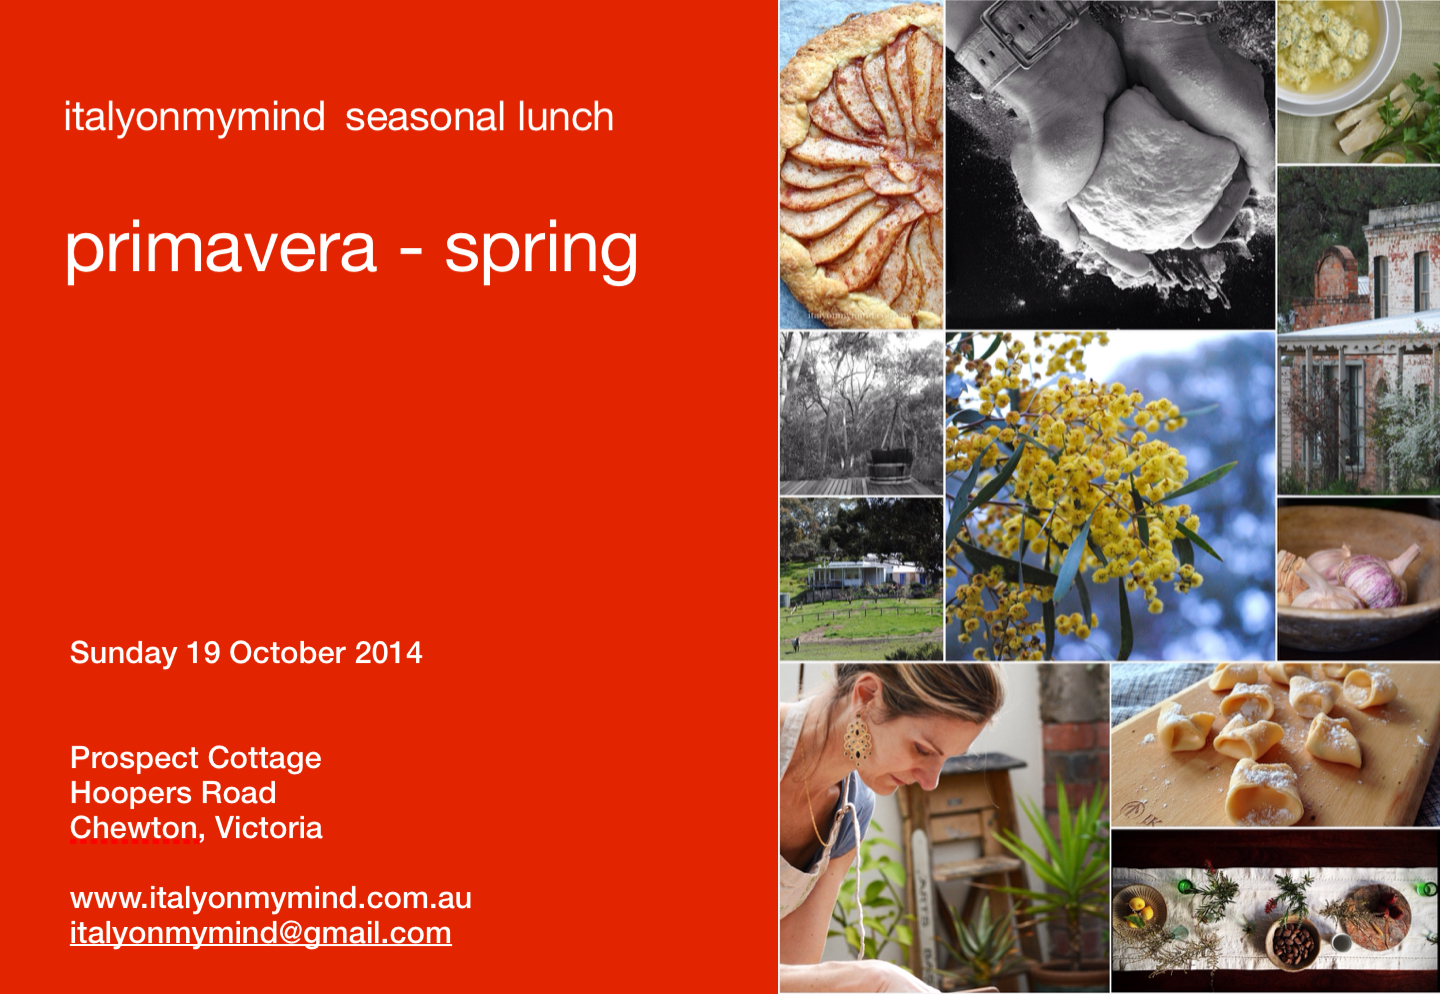 italyonmymind seasonal lunch – primavera – spring in Chewton